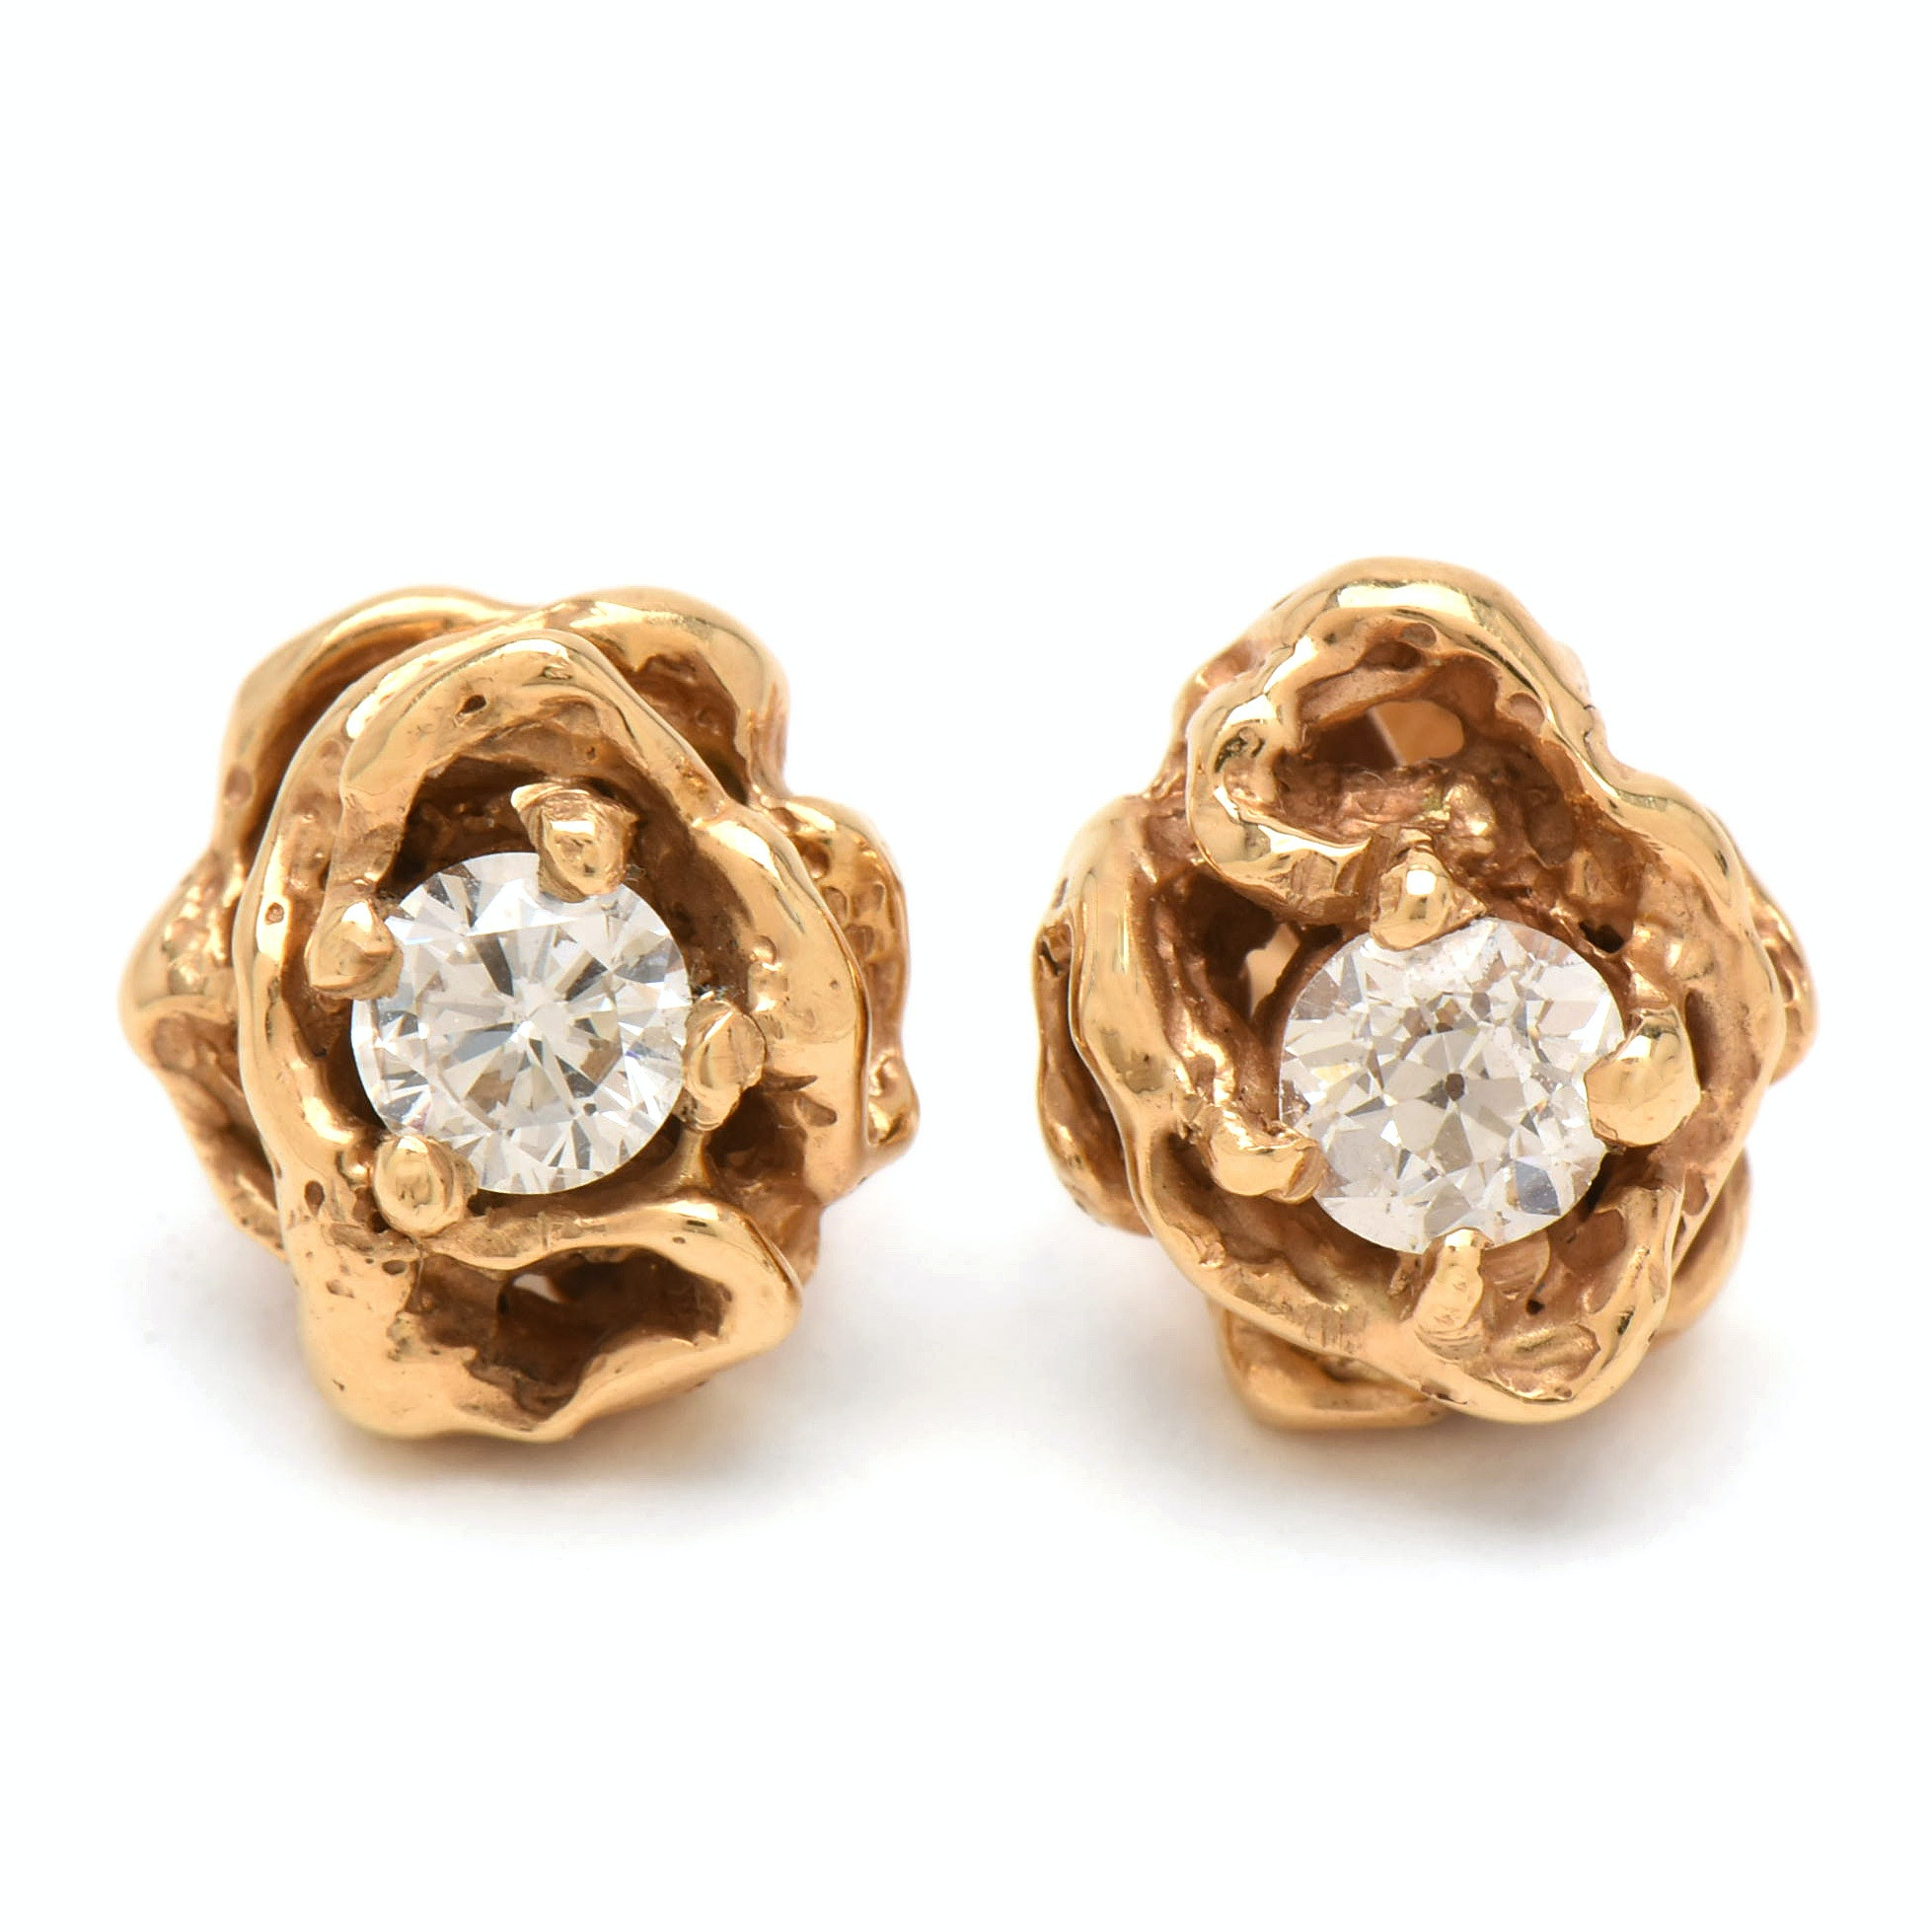 Arthur King 18K Yellow Gold Diamond Stud Earrings and 14K Yellow Gold Backs